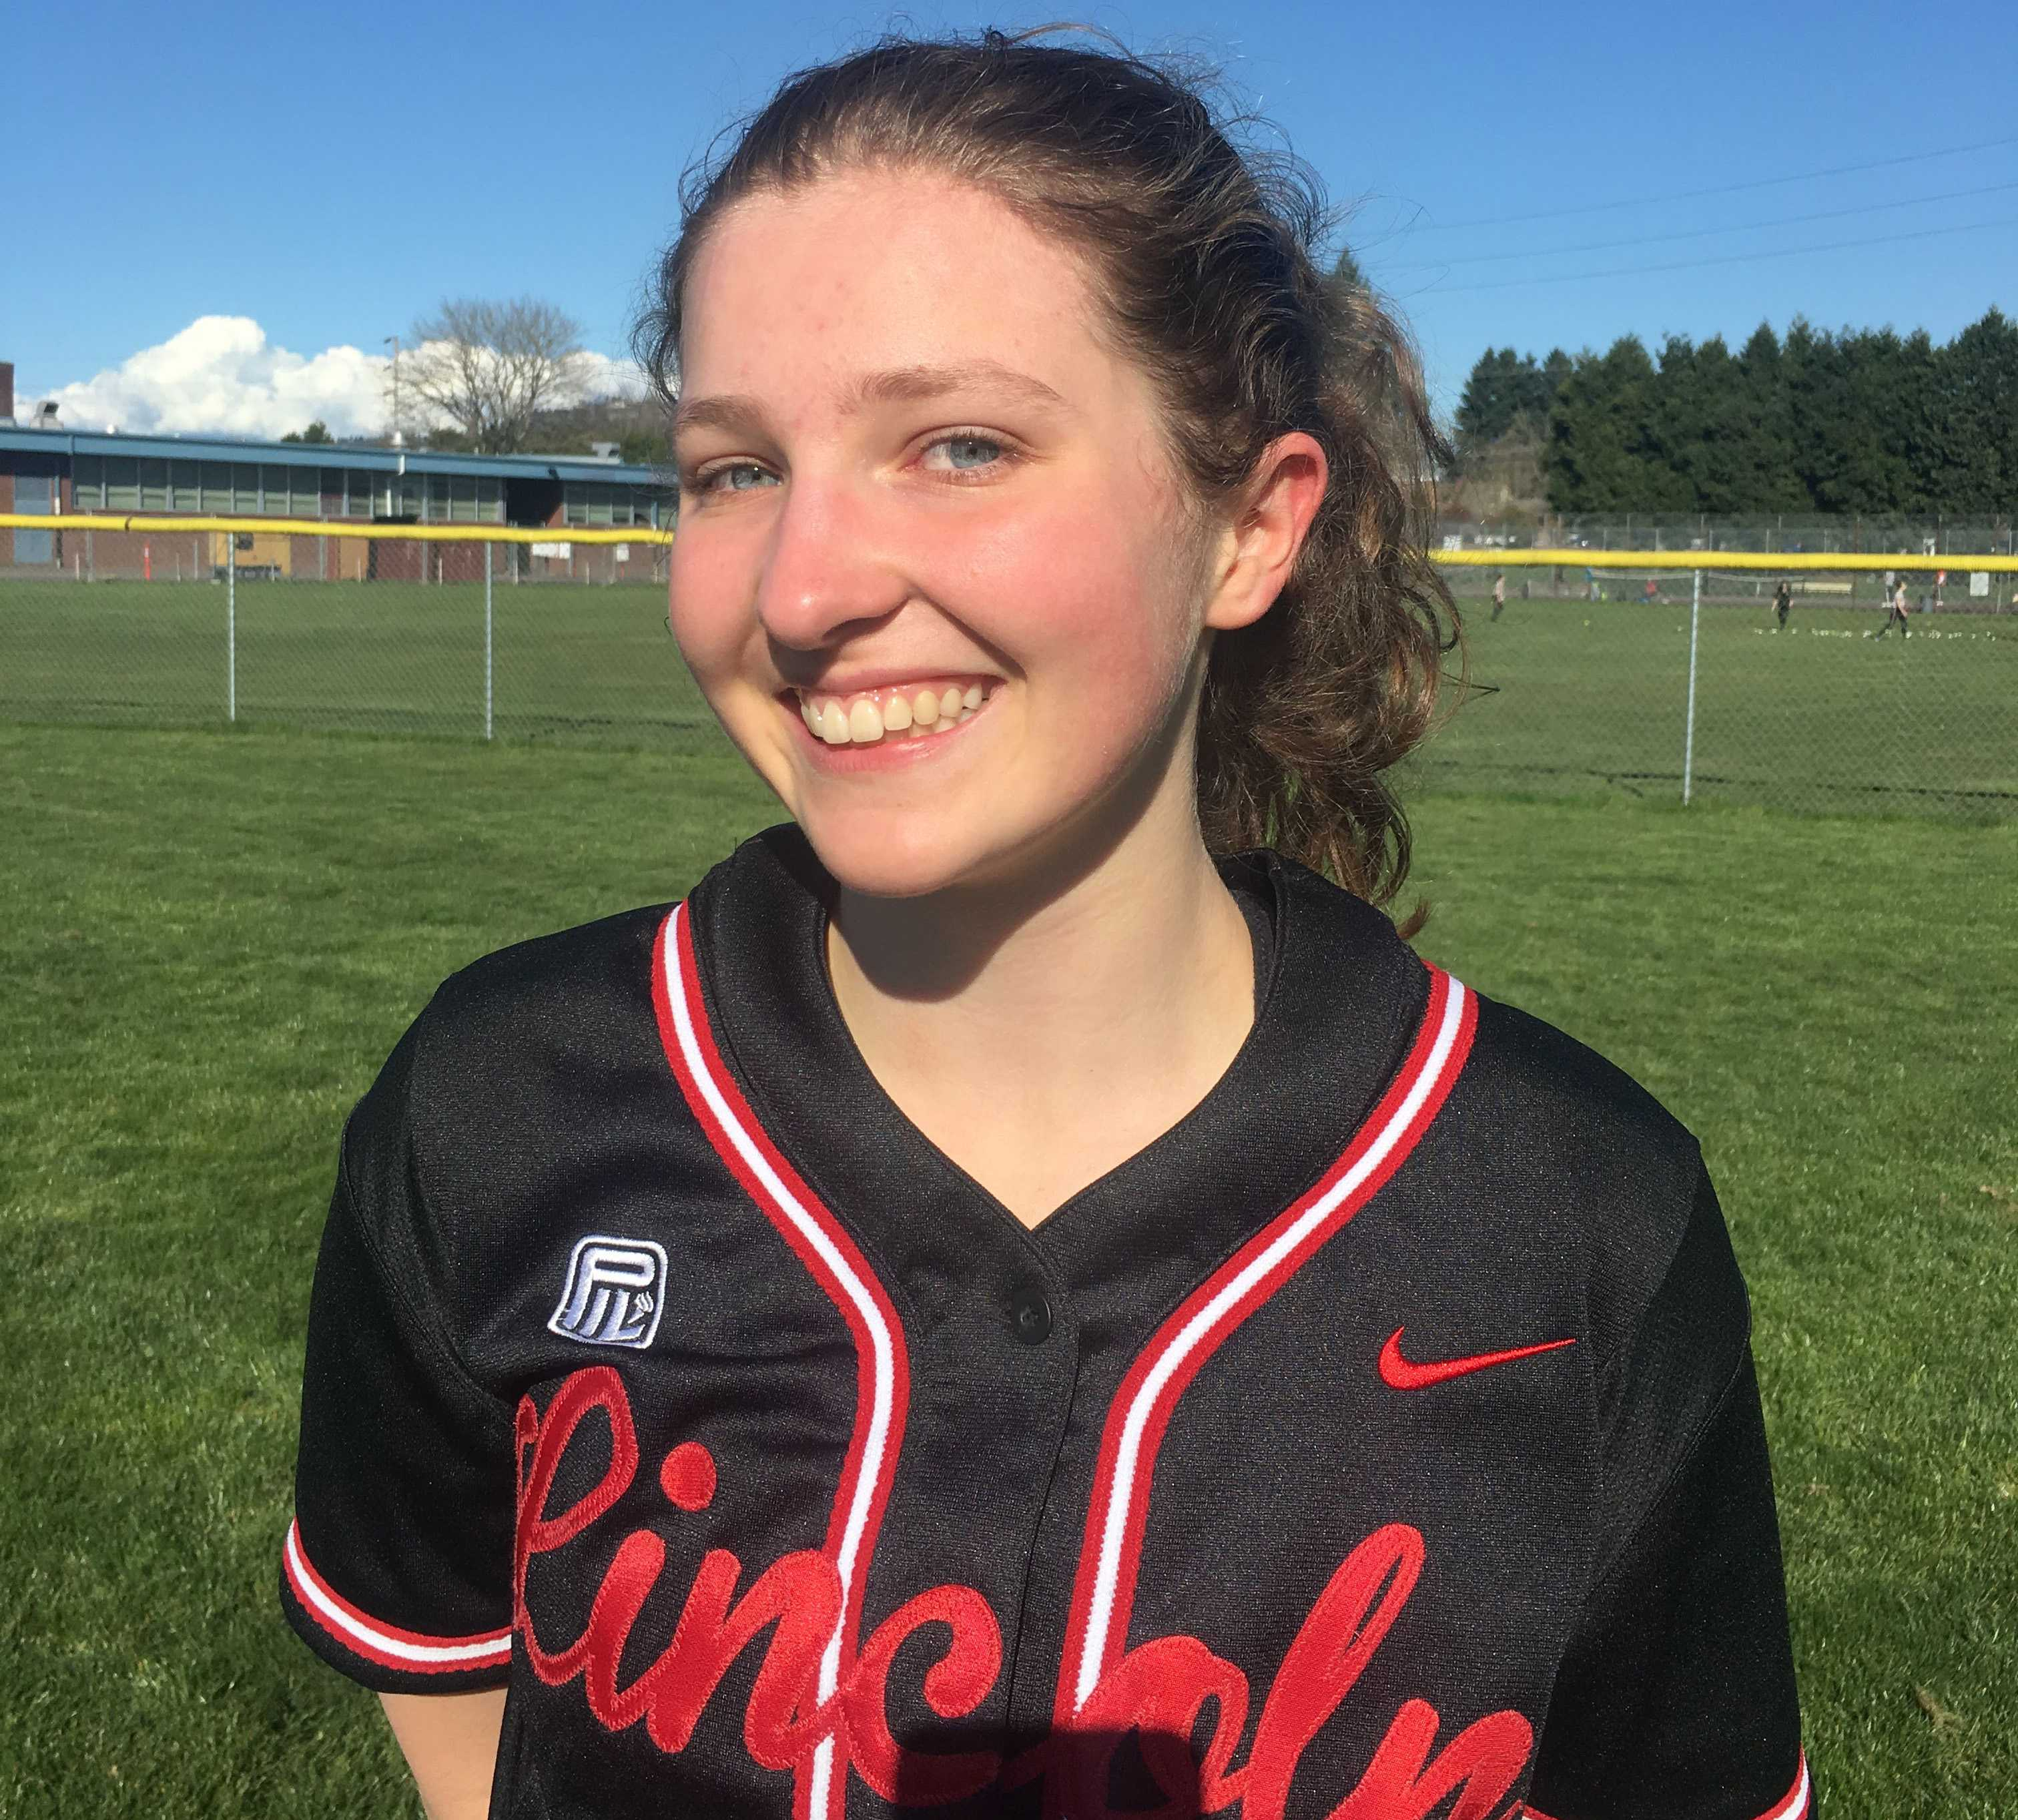 Rachel Haughton emphasizes that the Cardinal Rule of softball is to focus on the next play not the last one